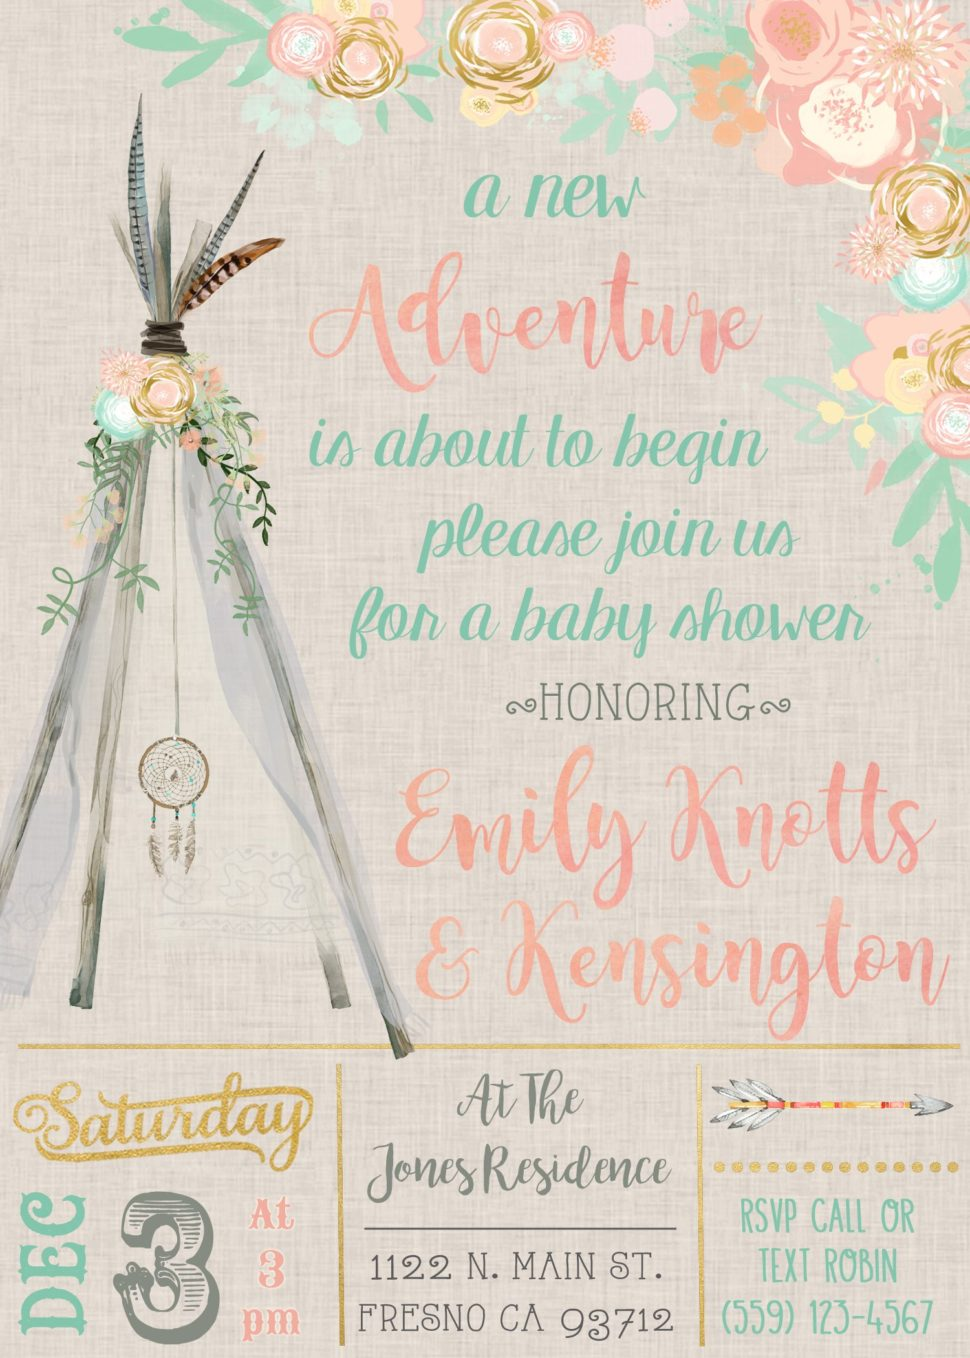 Medium Size of Baby Shower:baby Shower Invitations For Boys Homemade Baby Shower Decorations Baby Shower Ideas Nursery Themes For Girls Baby Girl Themes For Bedroom Baby Shower Centerpiece Ideas For Boys Invitations Oriental Trading Baby Shower